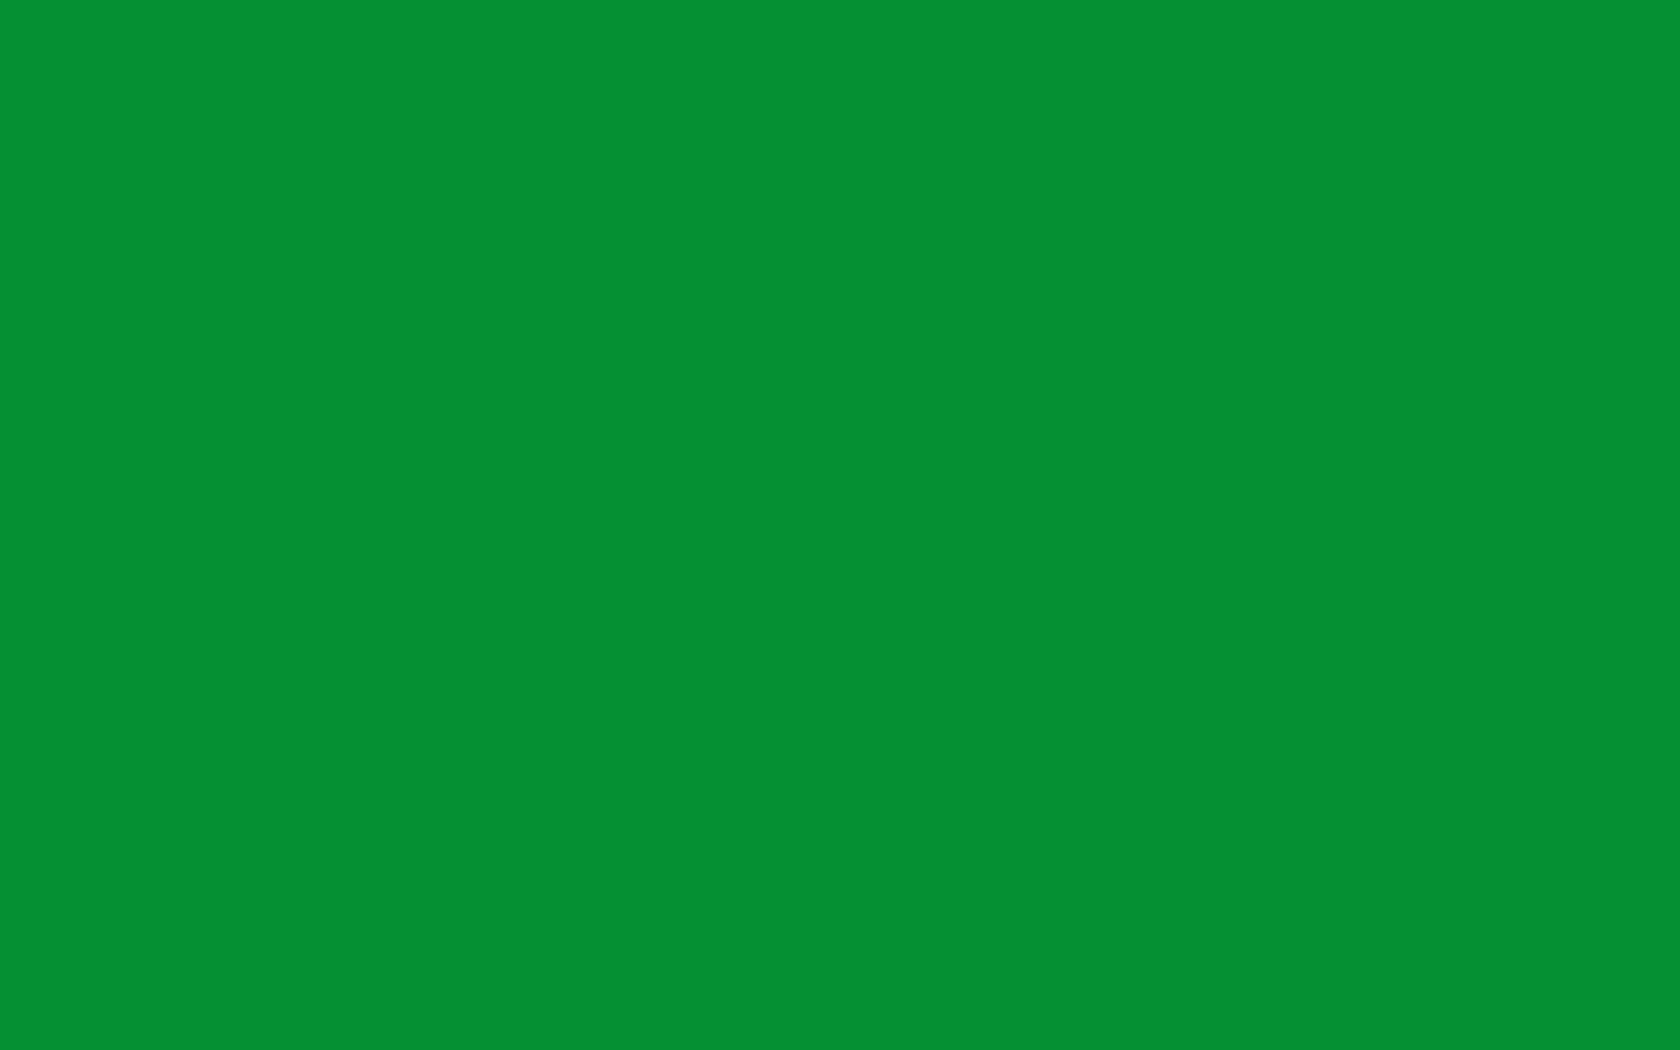 1680x1050 North Texas Green Solid Color Background